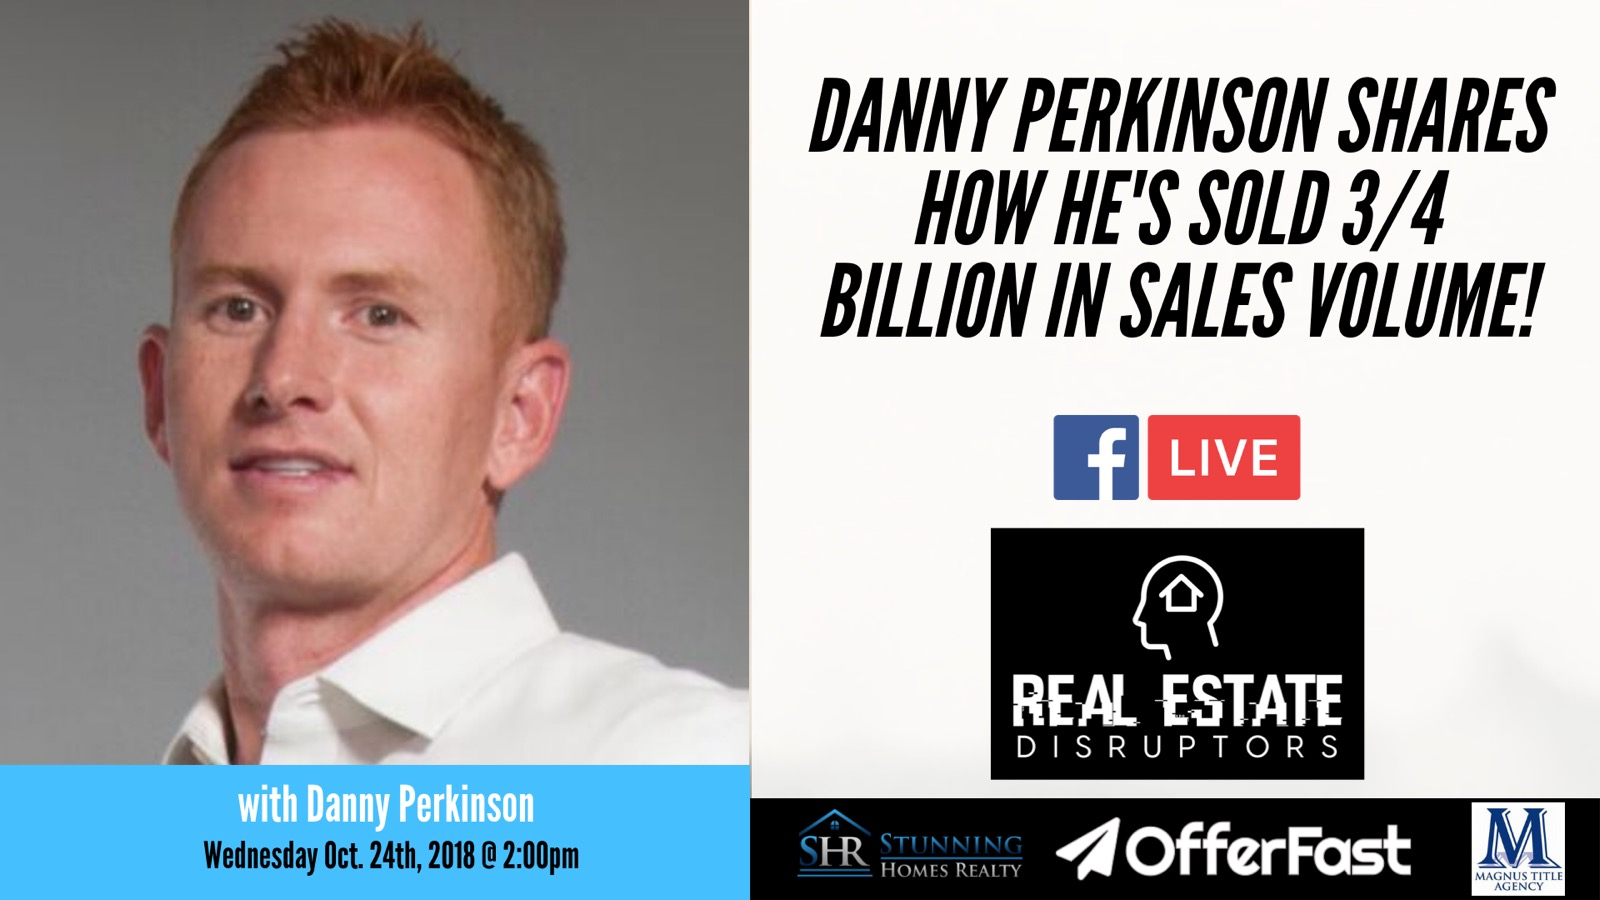 Interview with Danny Perkinson